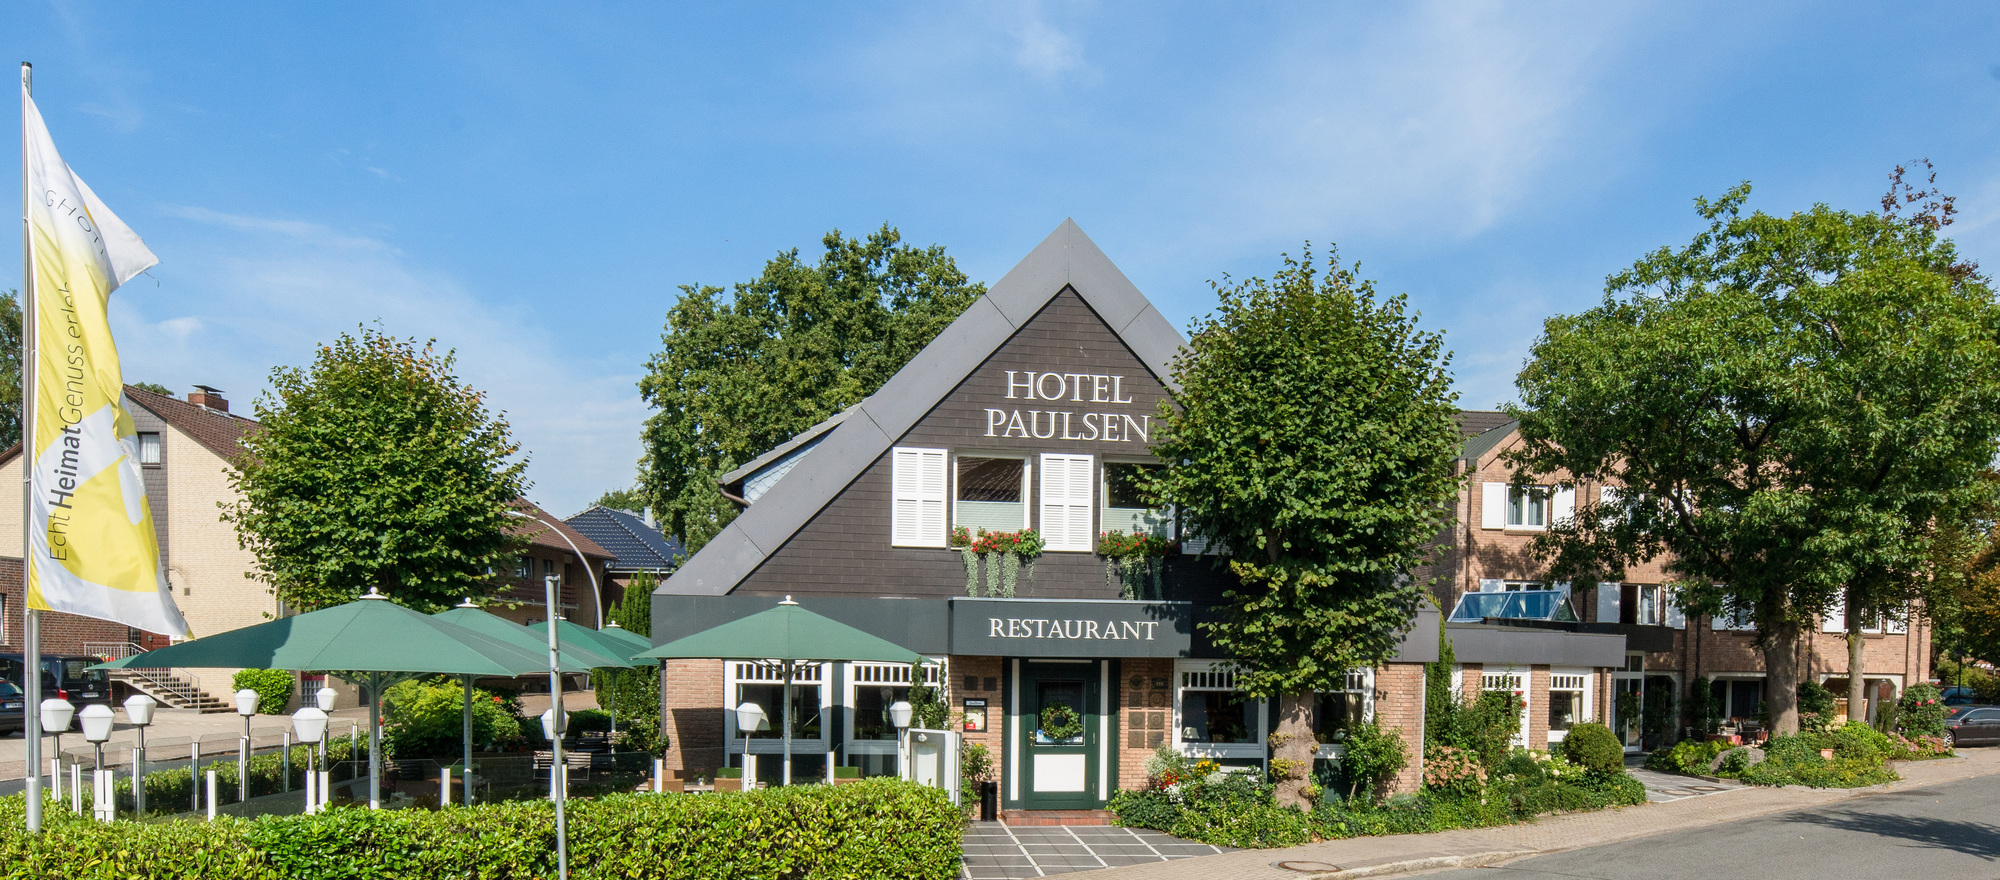 Enjoy the nature around the 3-star-superior hotel Ringhotel Paulsen in Zeven